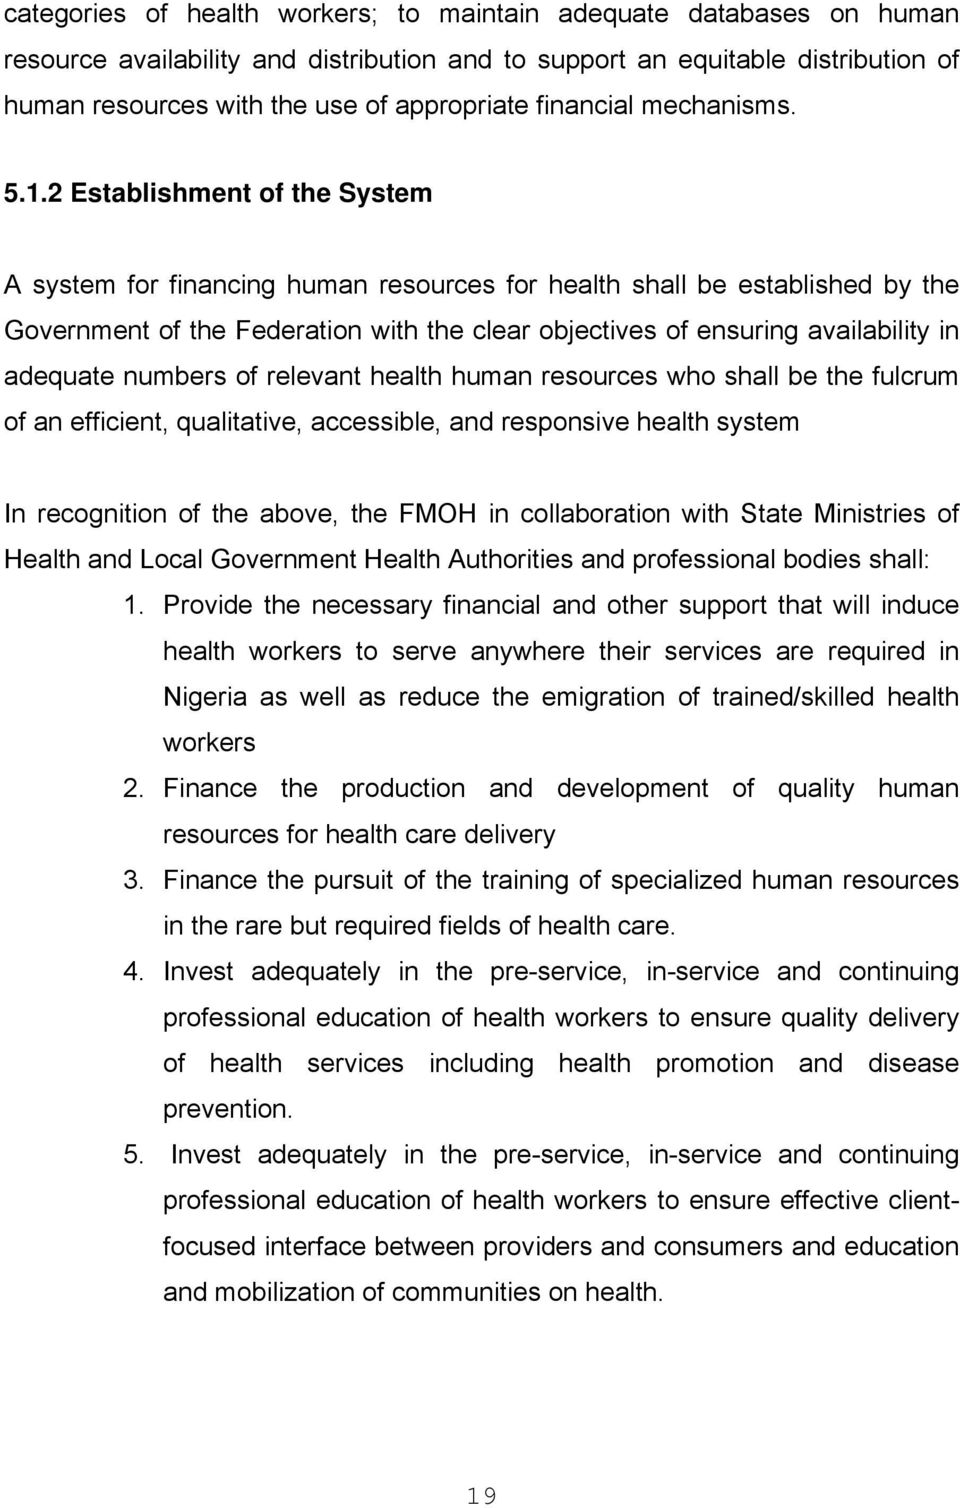 2 Establishment of the System A system for financing human resources for health shall be established by the Government of the Federation with the clear objectives of ensuring availability in adequate